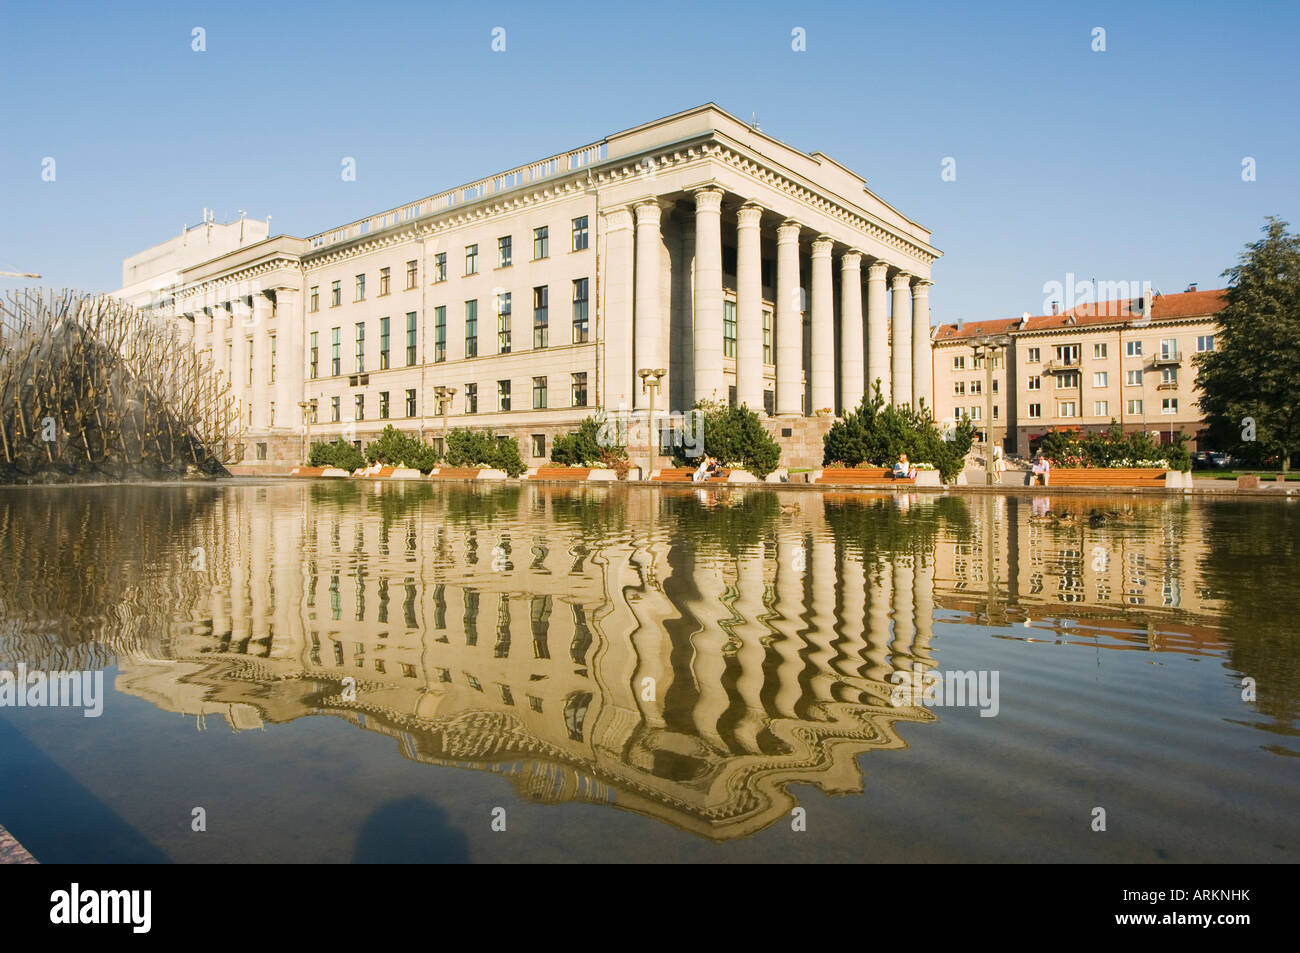 Parliament building with reflection in water, Vilnius, Lithuania, Baltic States, Europe - Stock Image